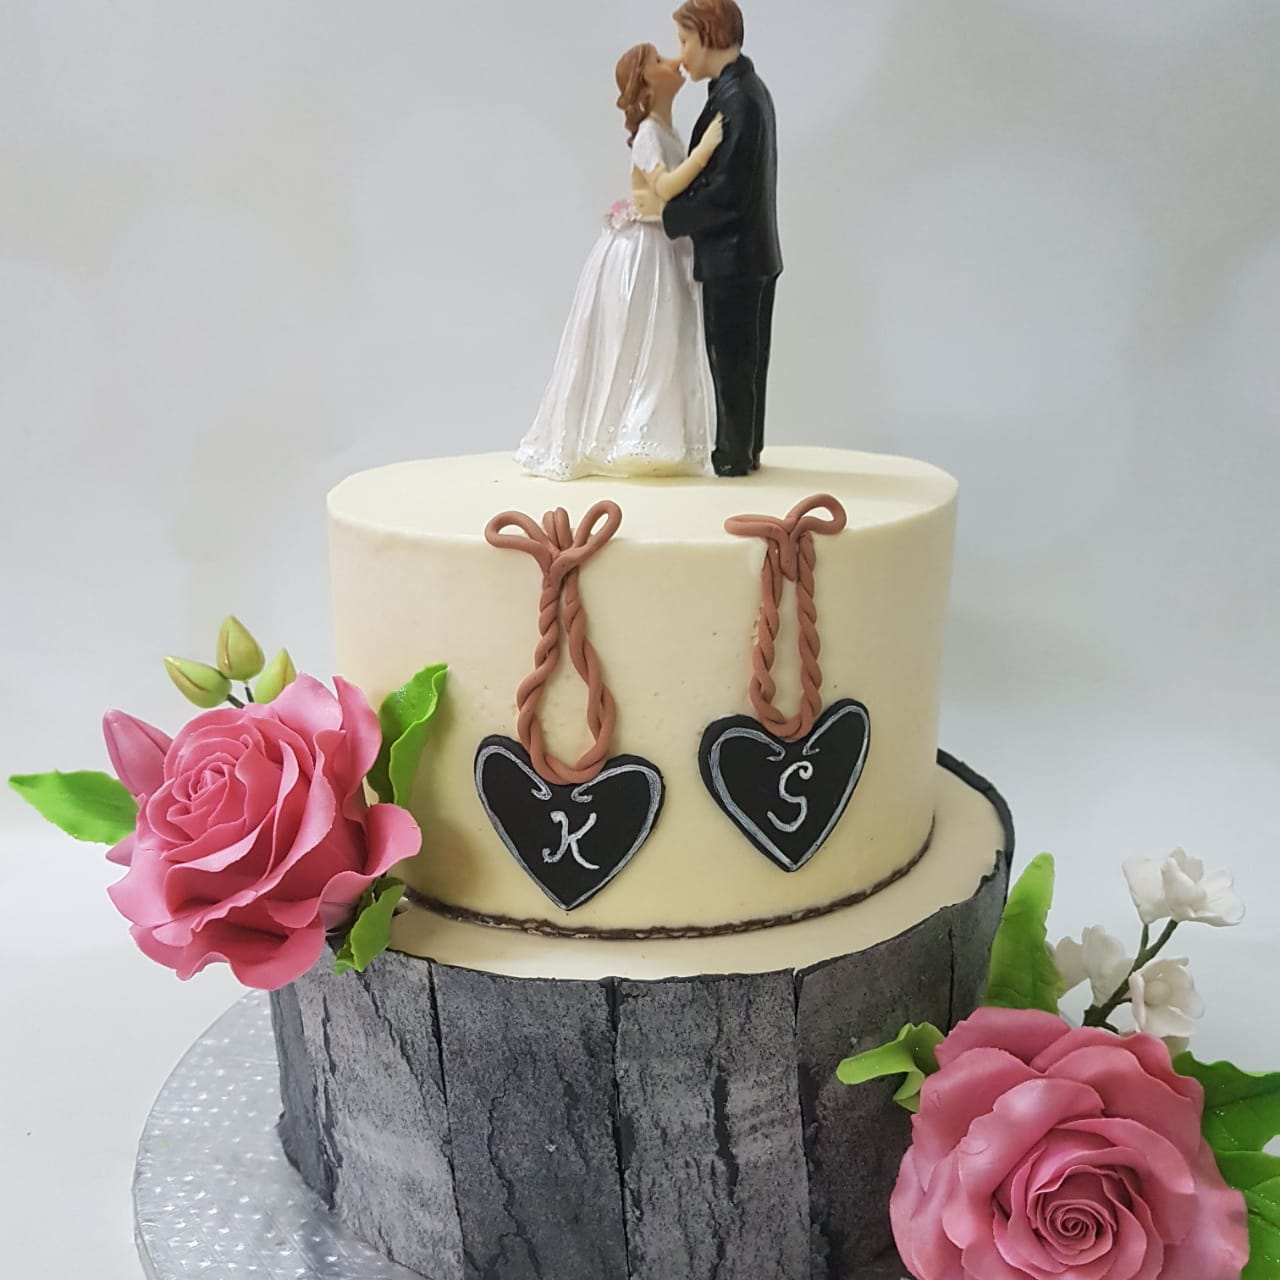 Cake for couples by shalini salve